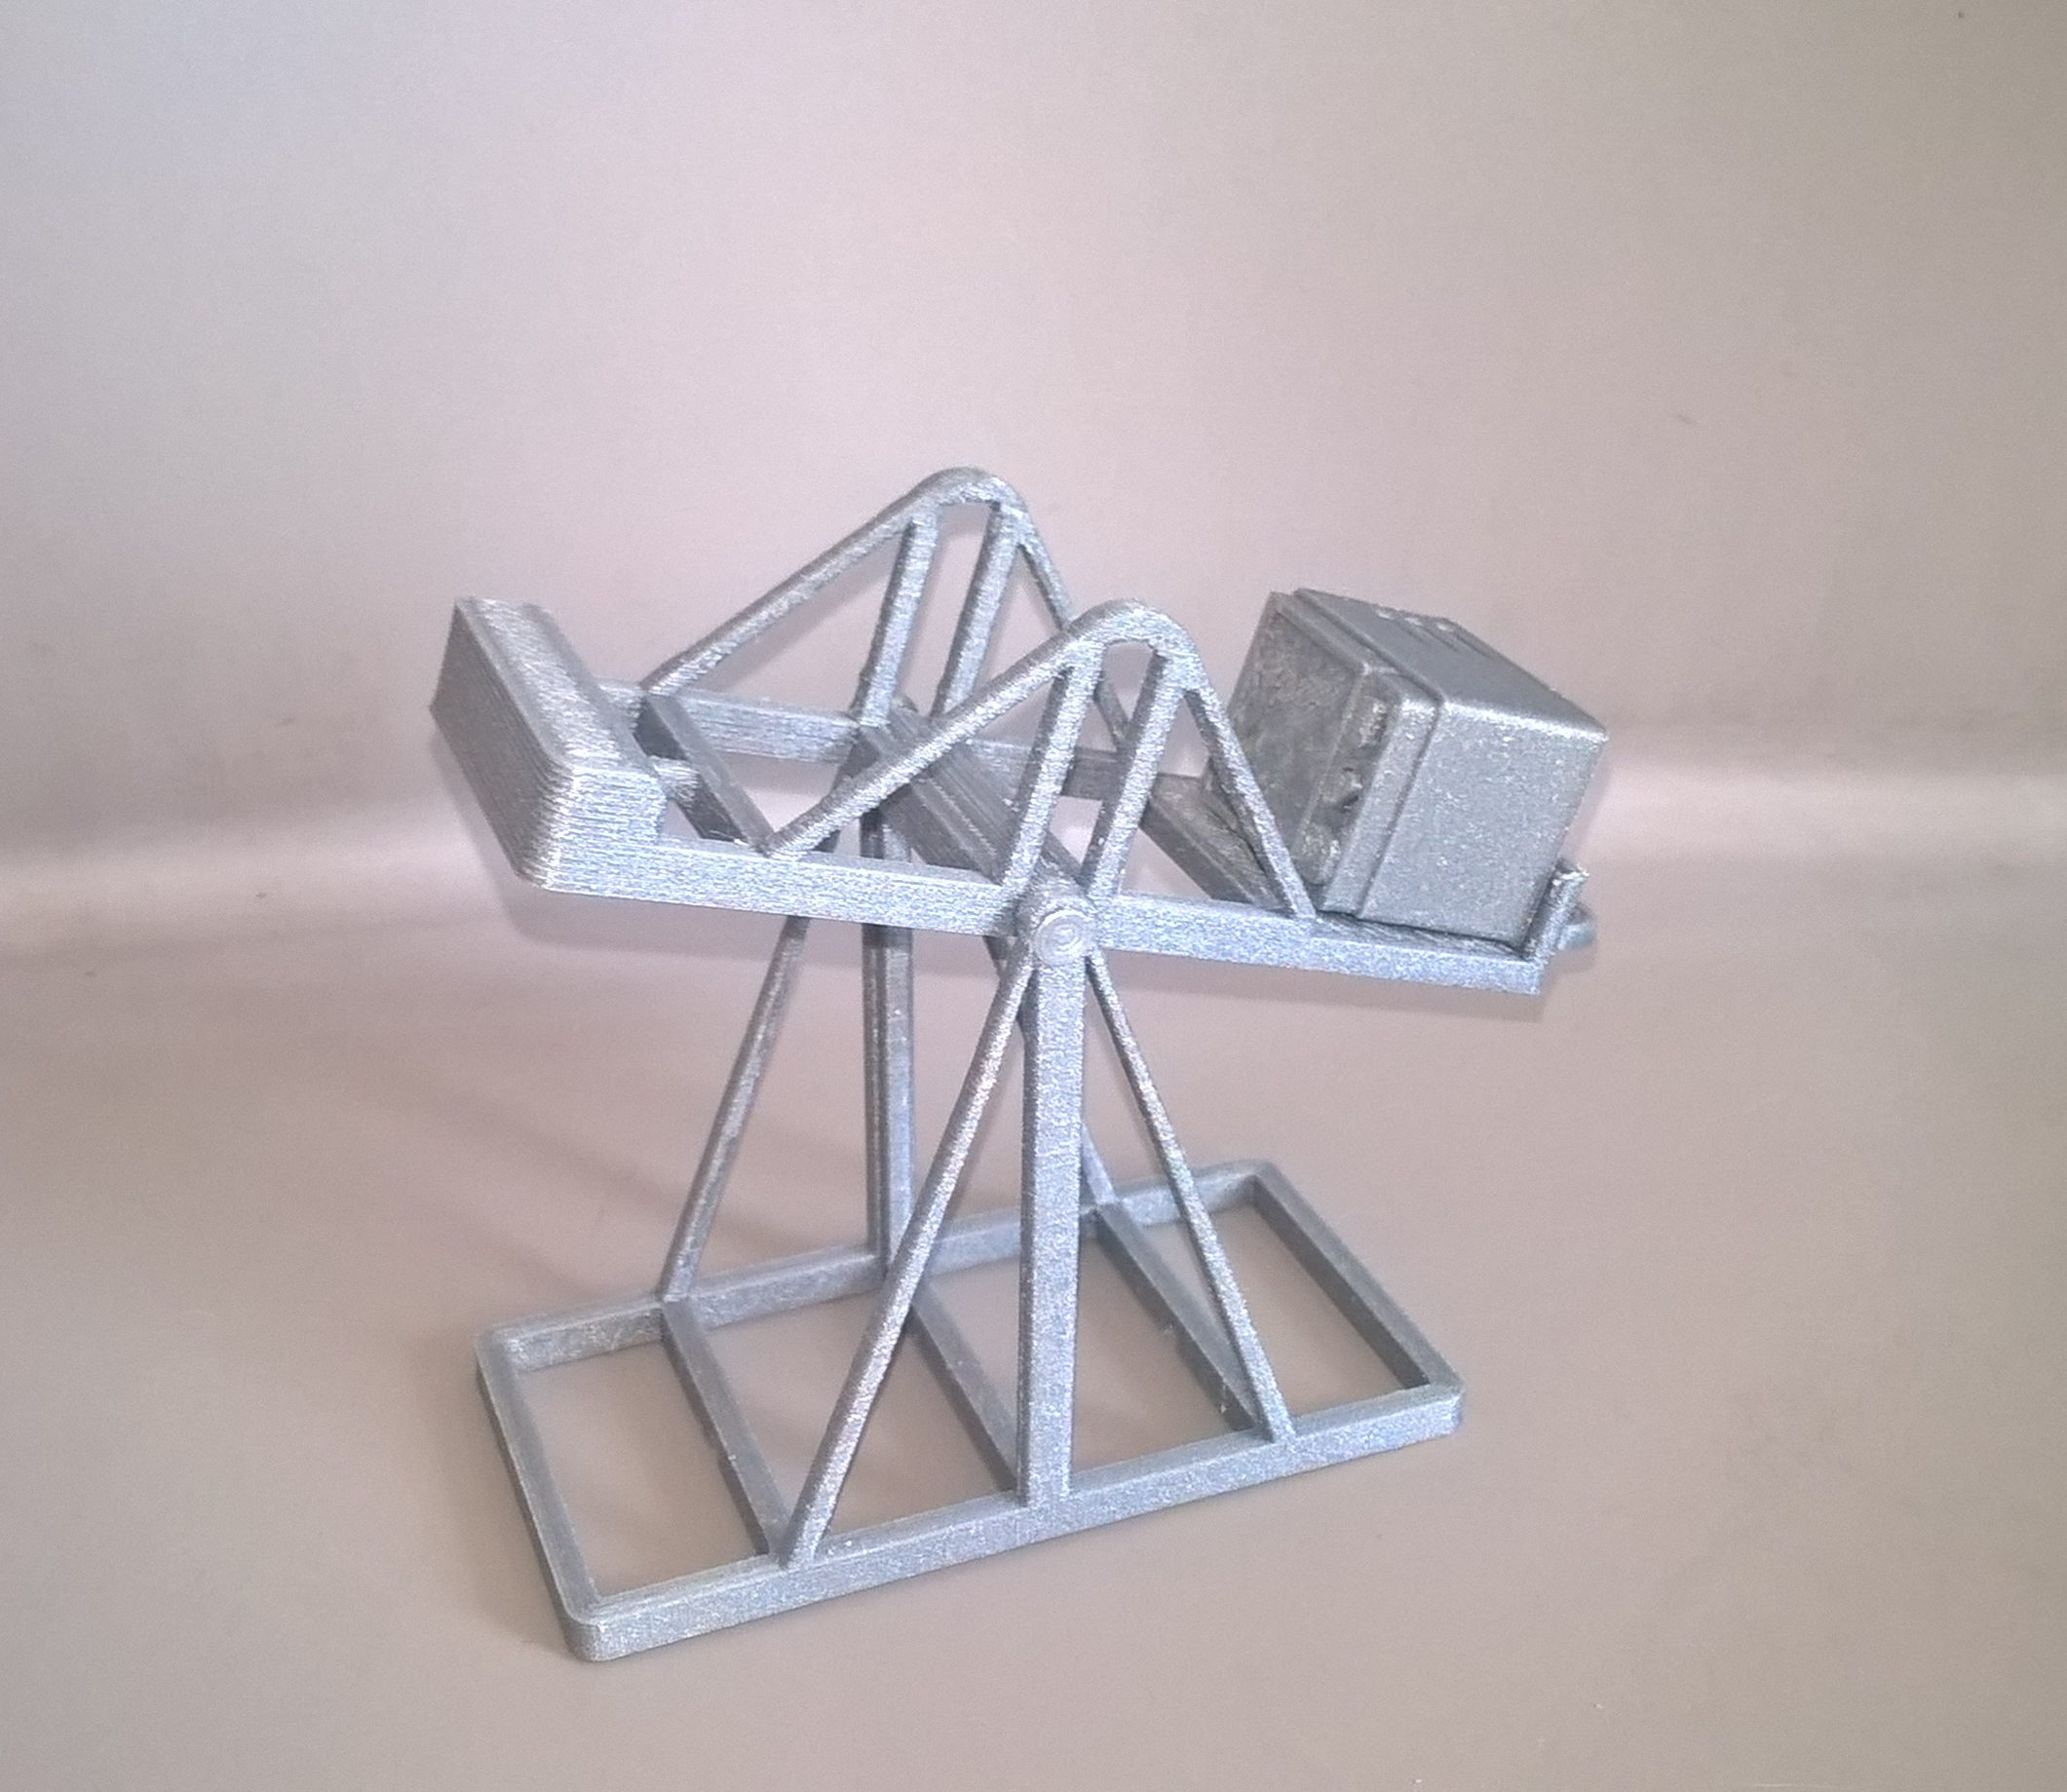 catapulte.png Download free STL file Microwave Catapult • 3D printable model, fabricationperso